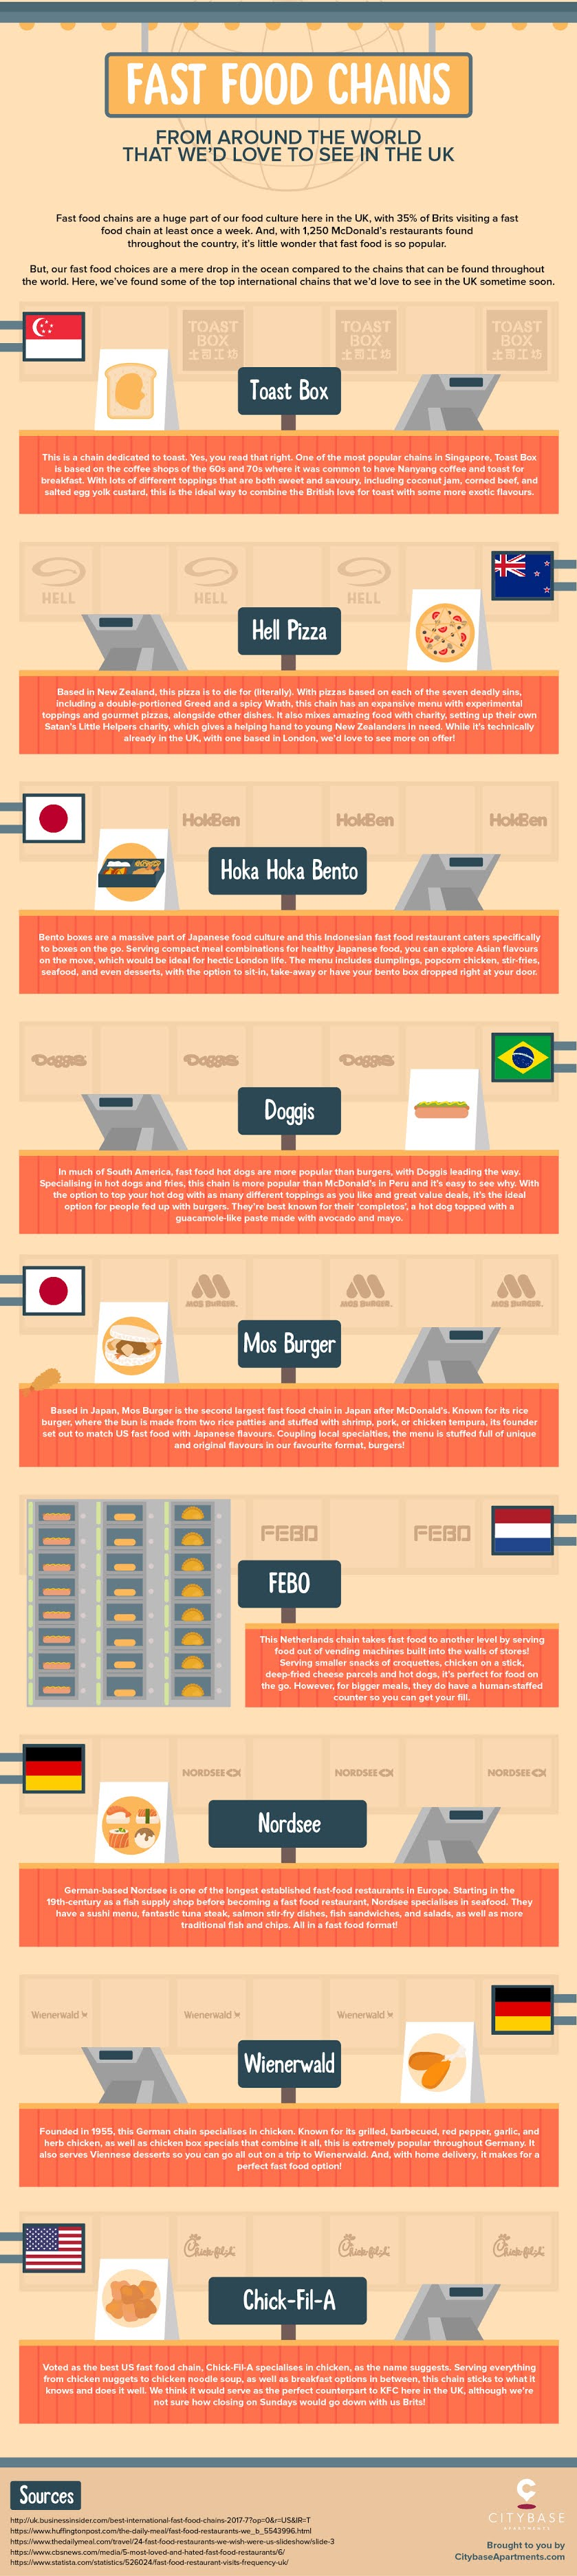 Fast Food Chains from Around the World That We'd Love to See in The UK #infographic #Fast Food Chains #Fast Food #World #Food